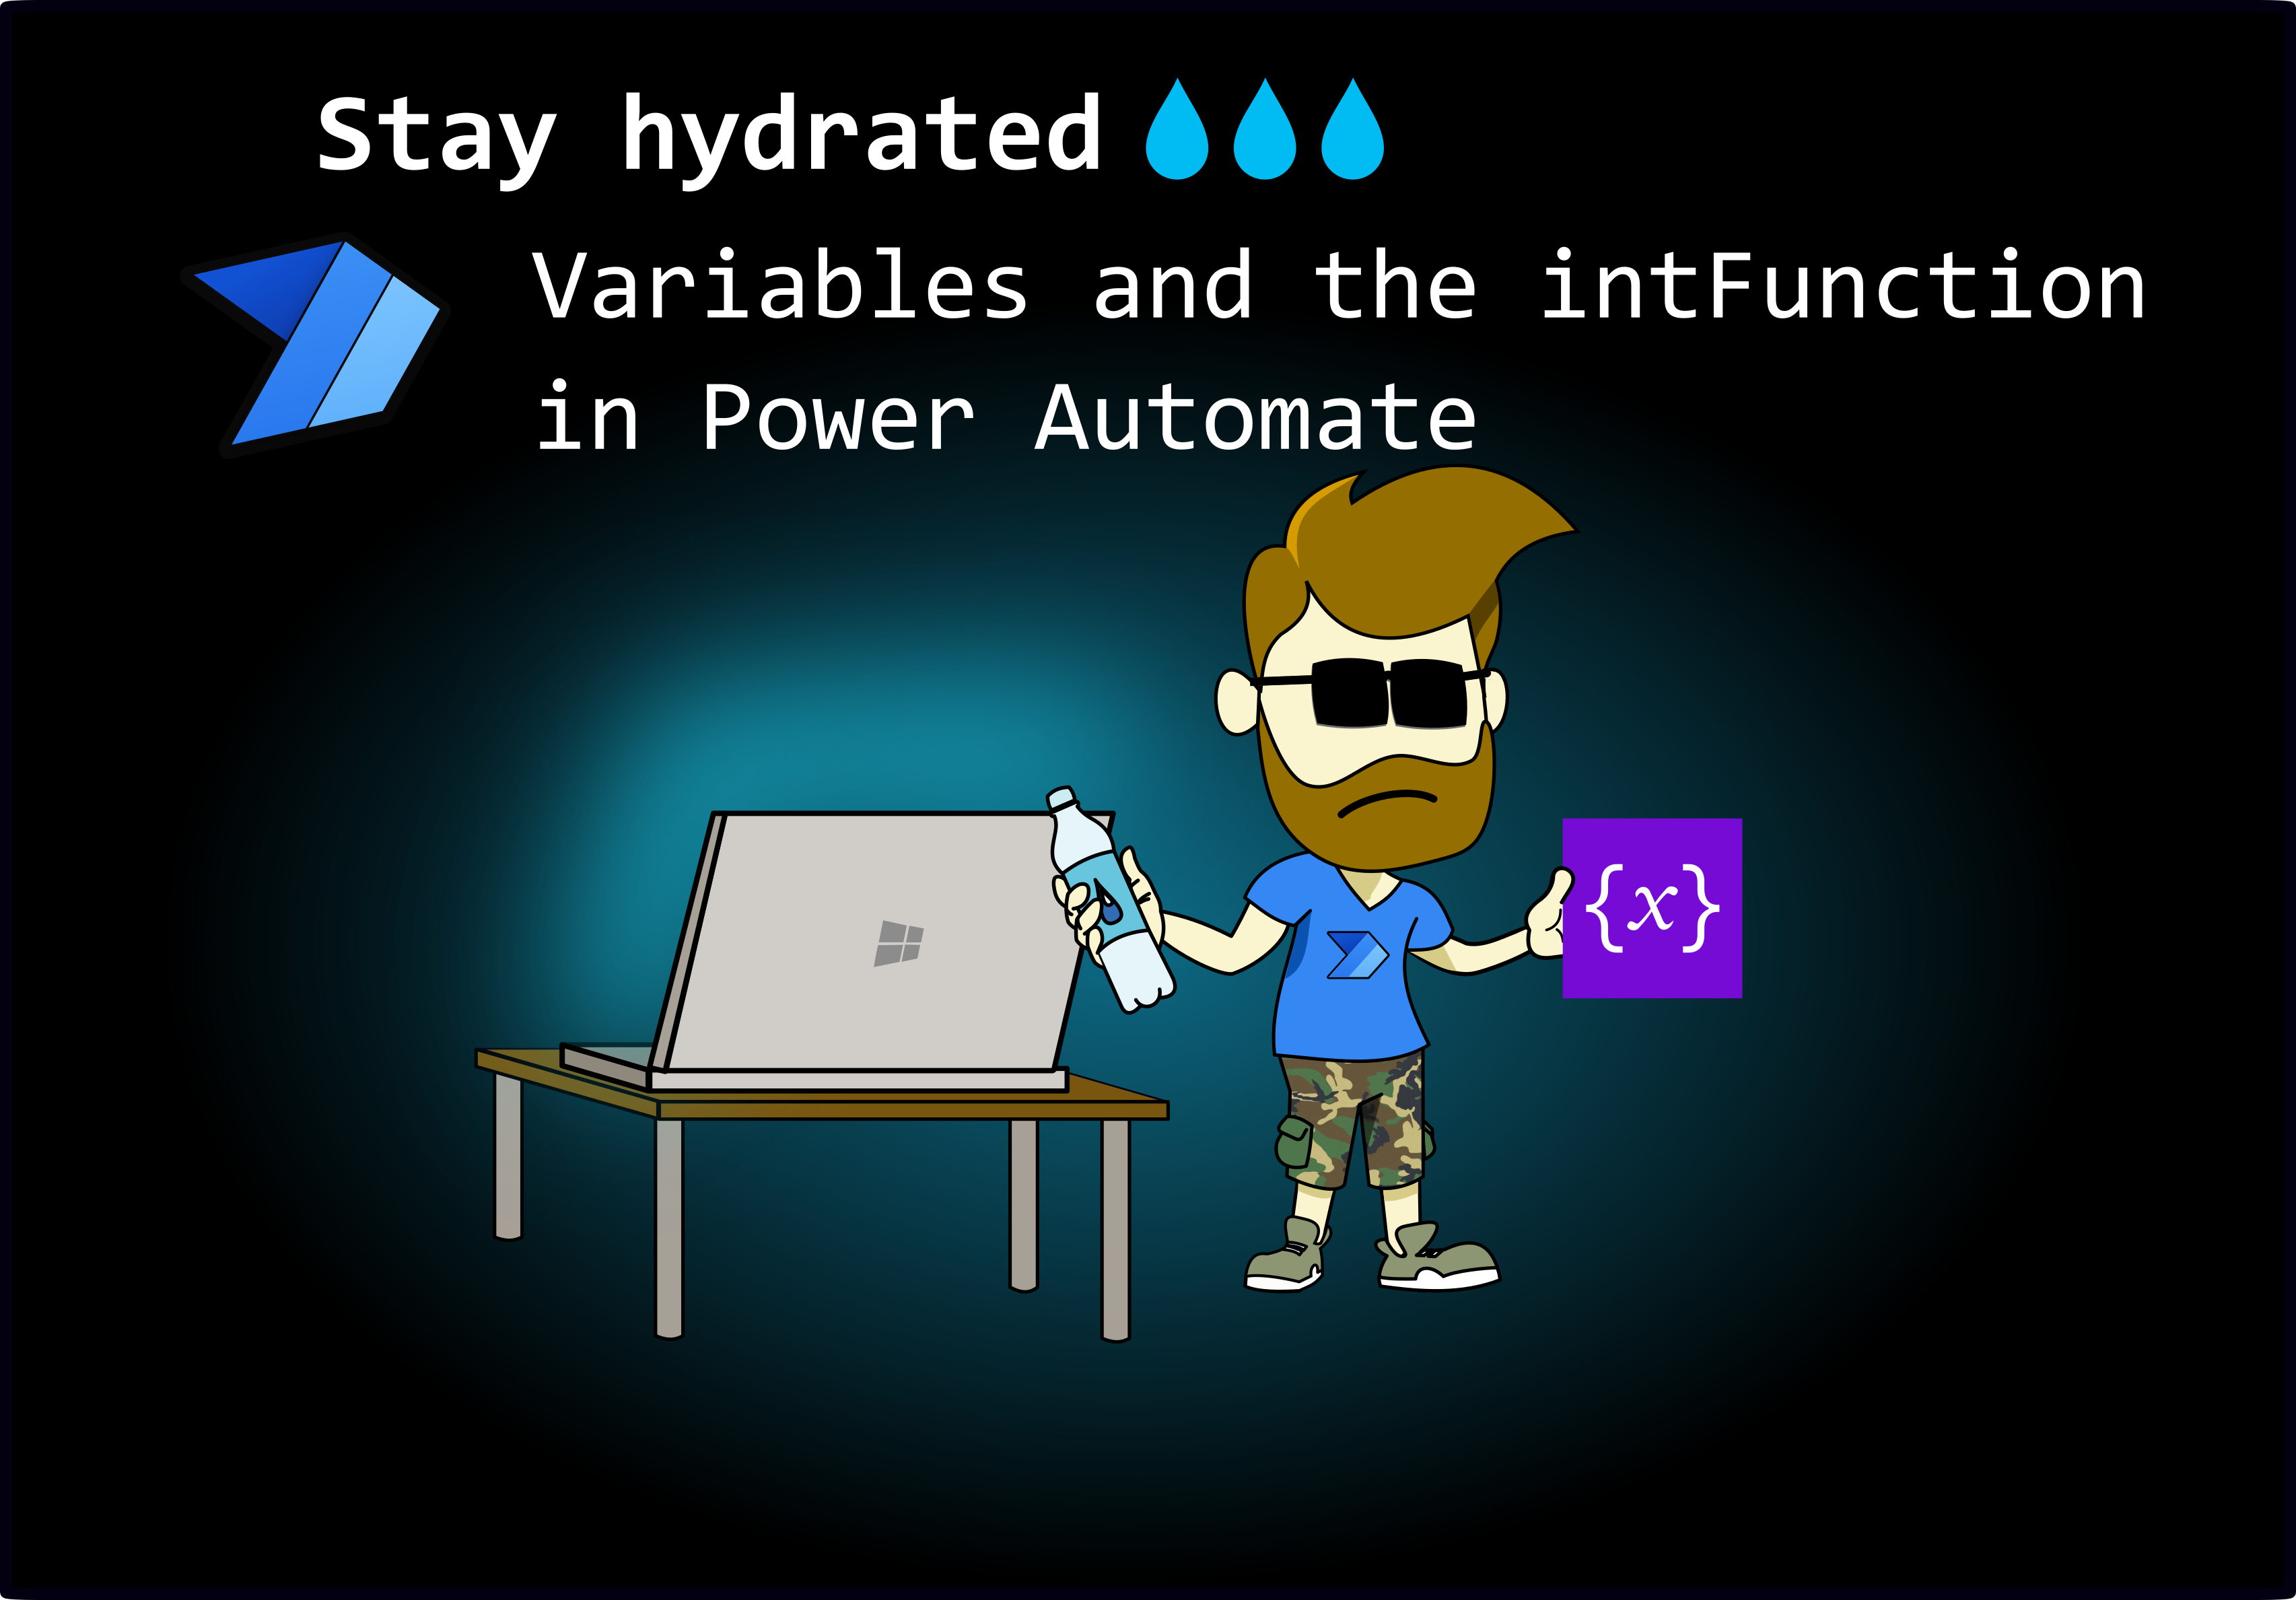 Stay hydrated – Learn about Variables and Functions in Power Automate